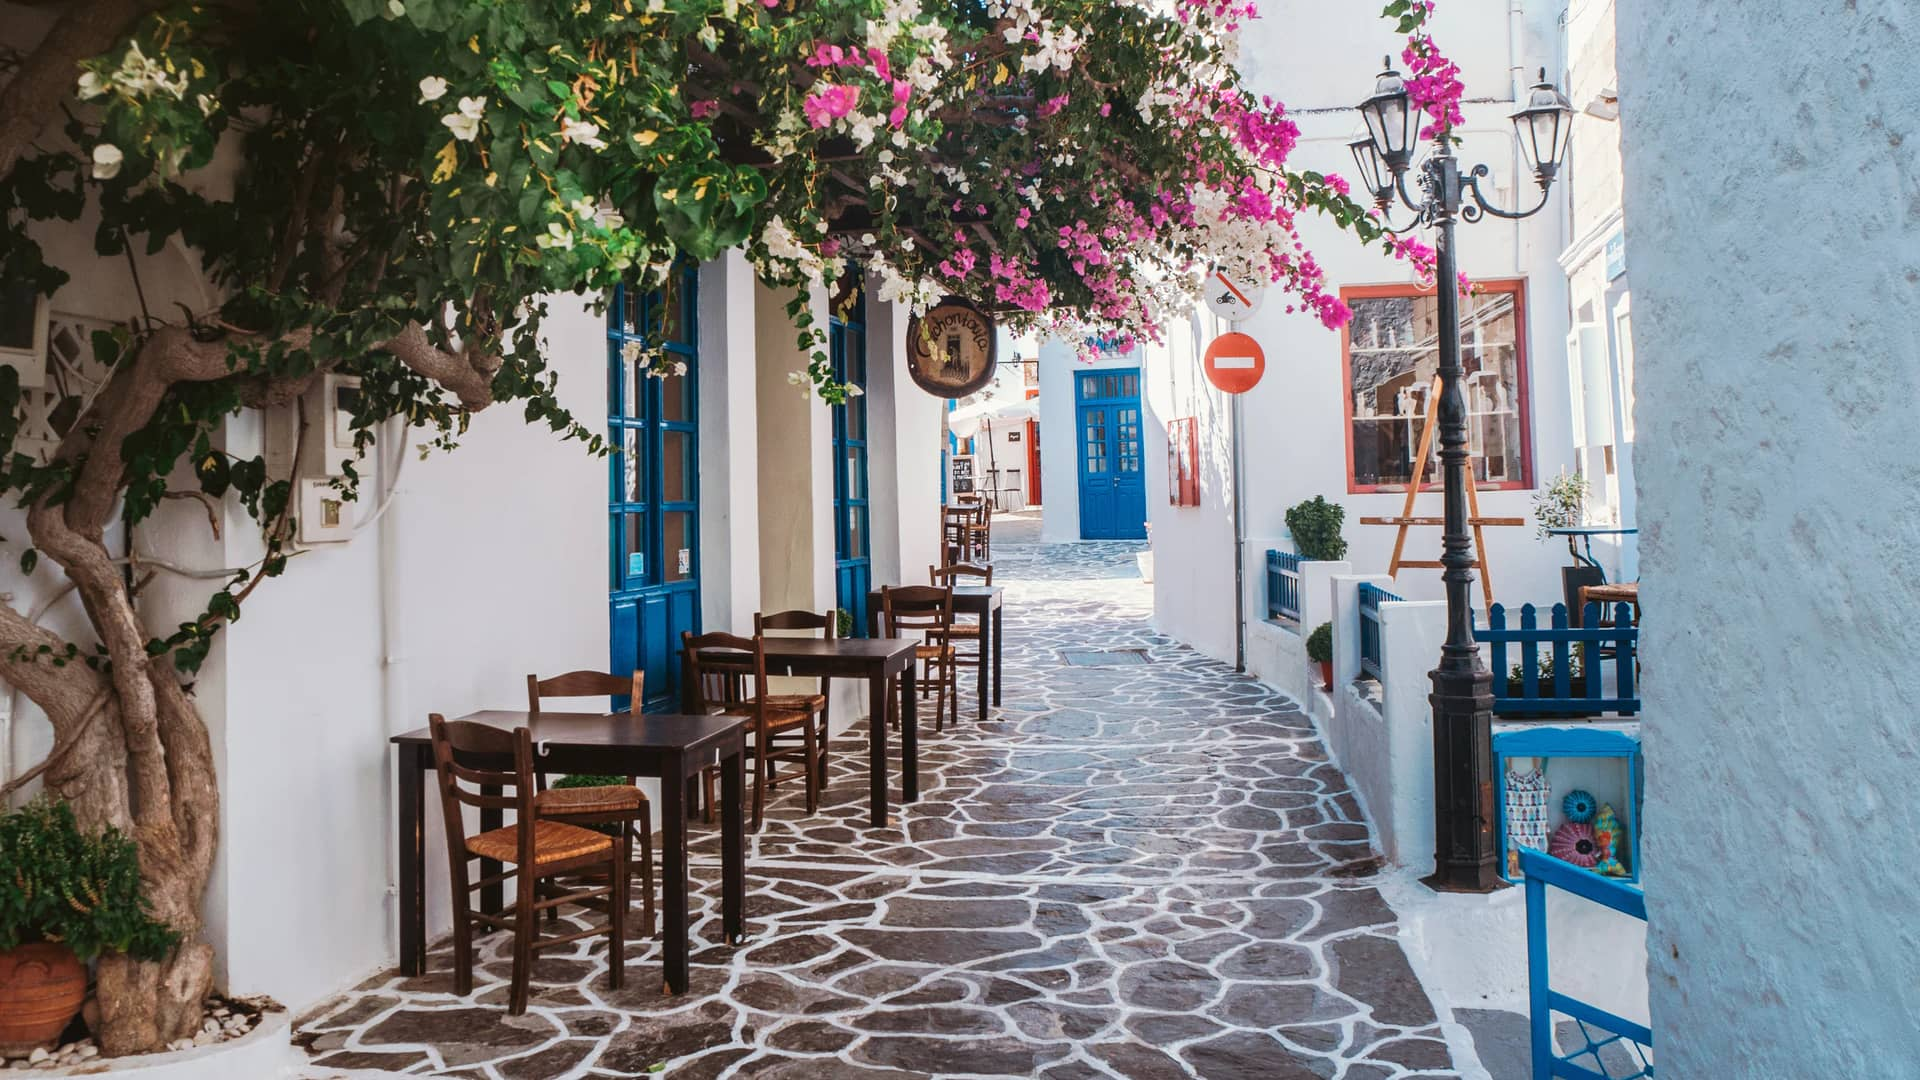 Typical alley in Plaka, the main town of Milos